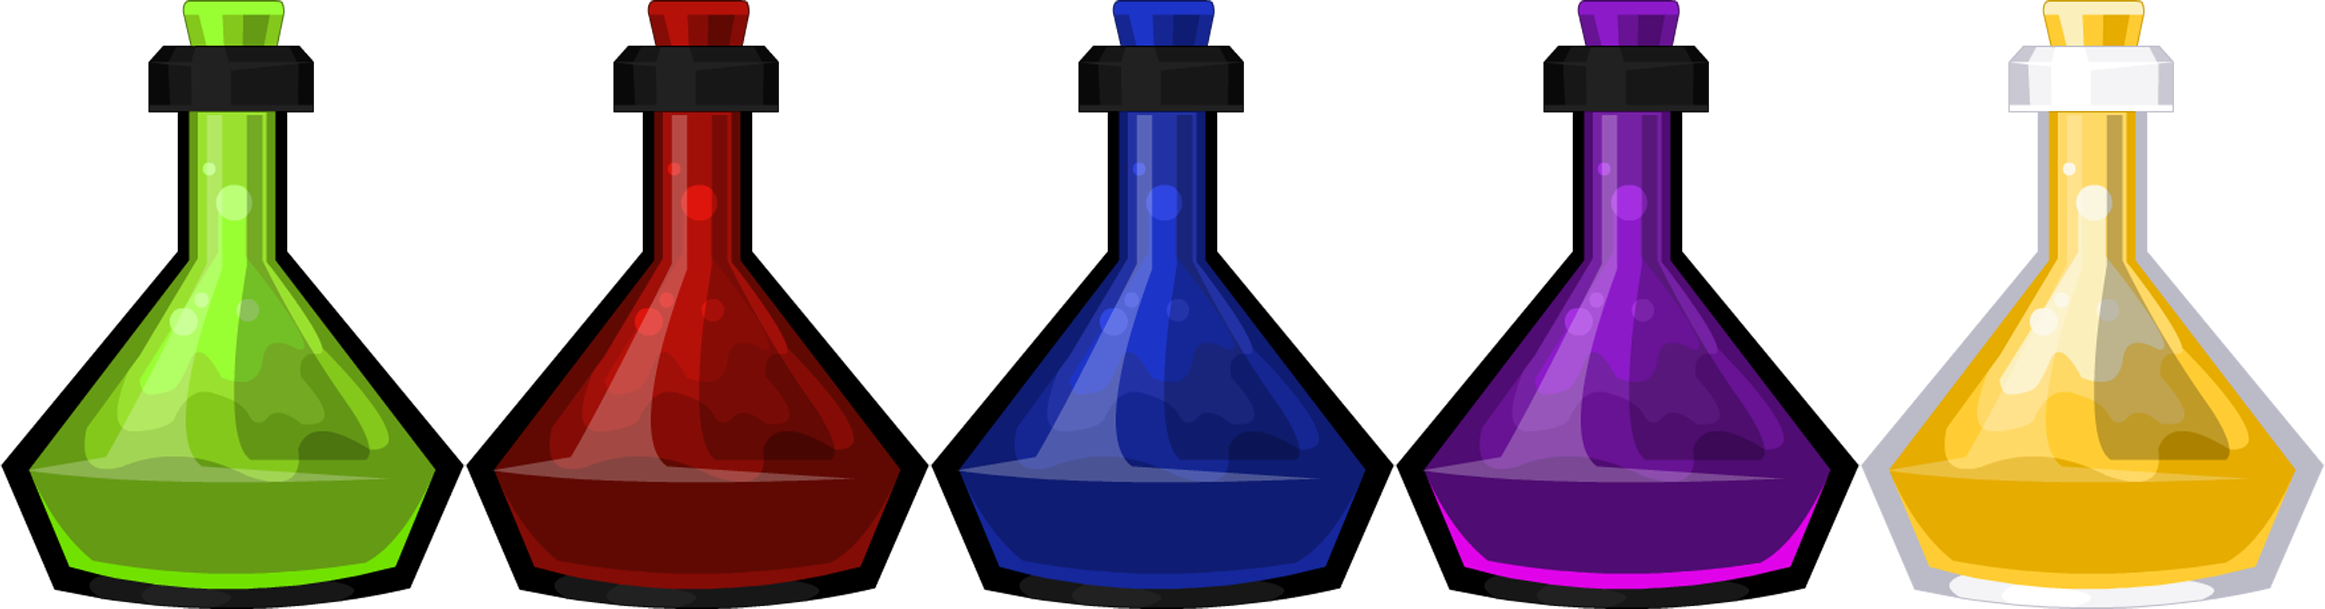 Nov. 2015 Runic Alchemist Potion Bottle